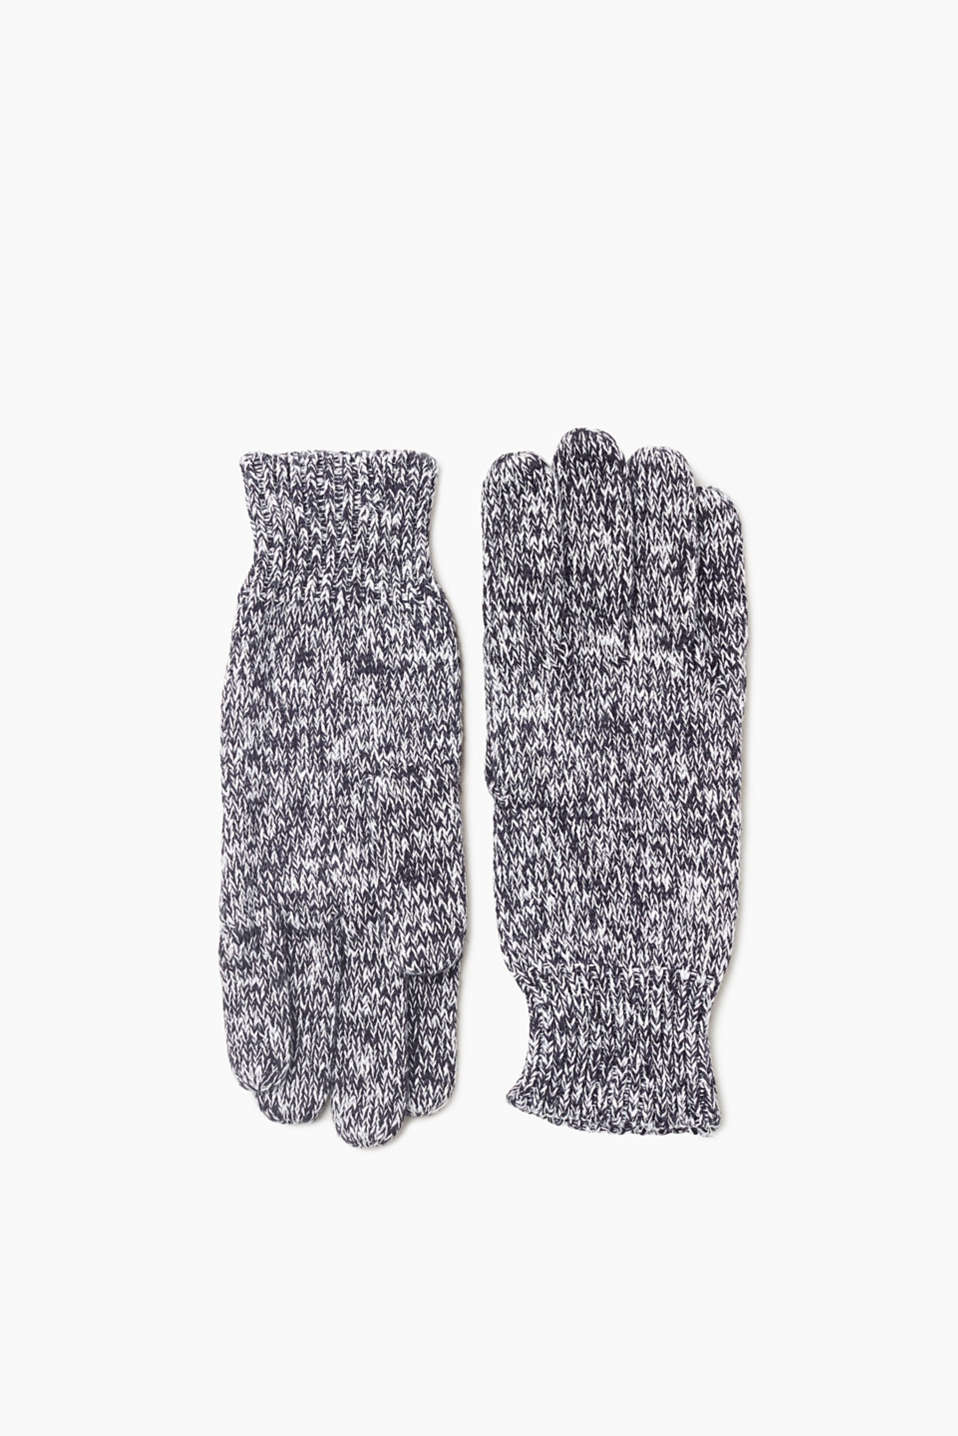 We love knitwear! And these gloves in two-tone knit fabric are no exception.